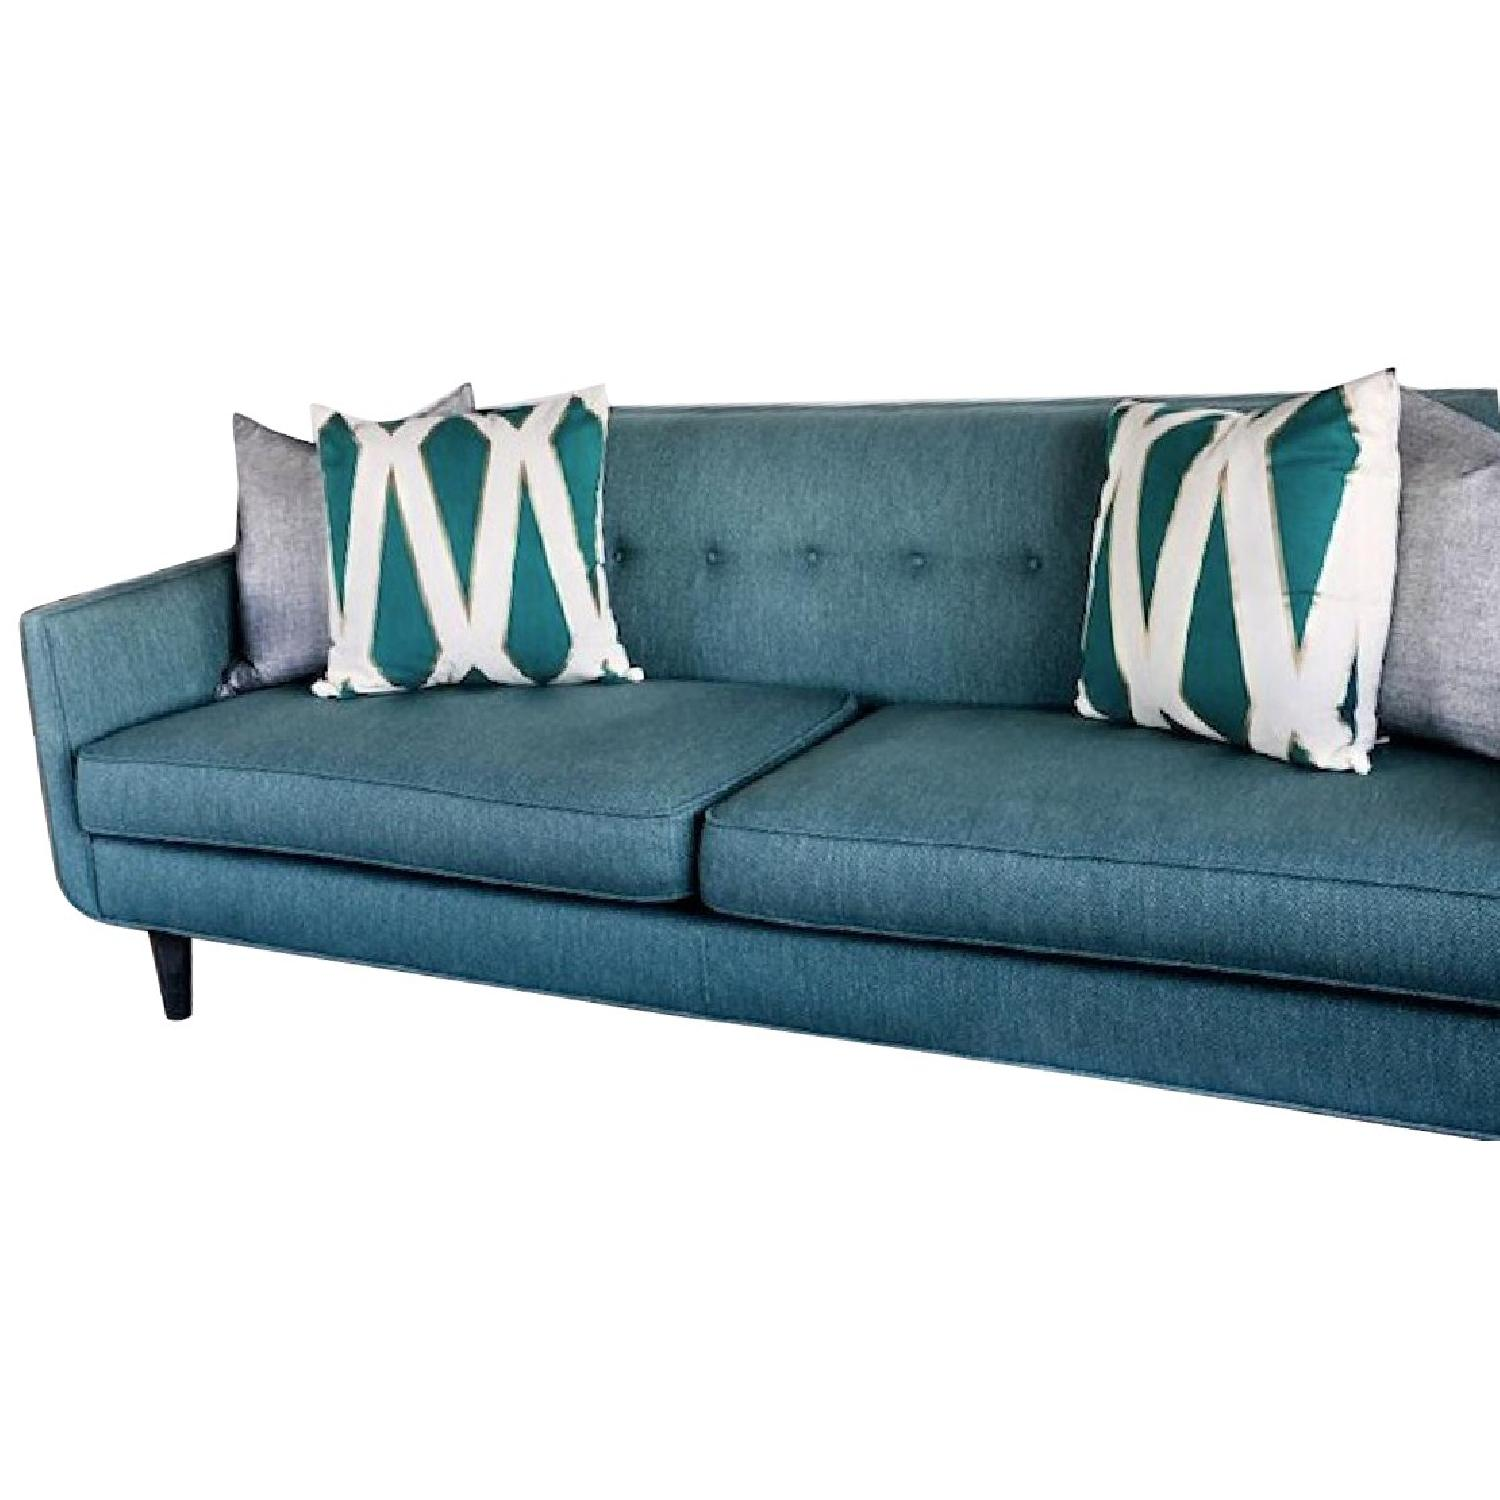 Crate & Barrel Gia Teal Blue Green Modern Tufted Sofa - AptDeco